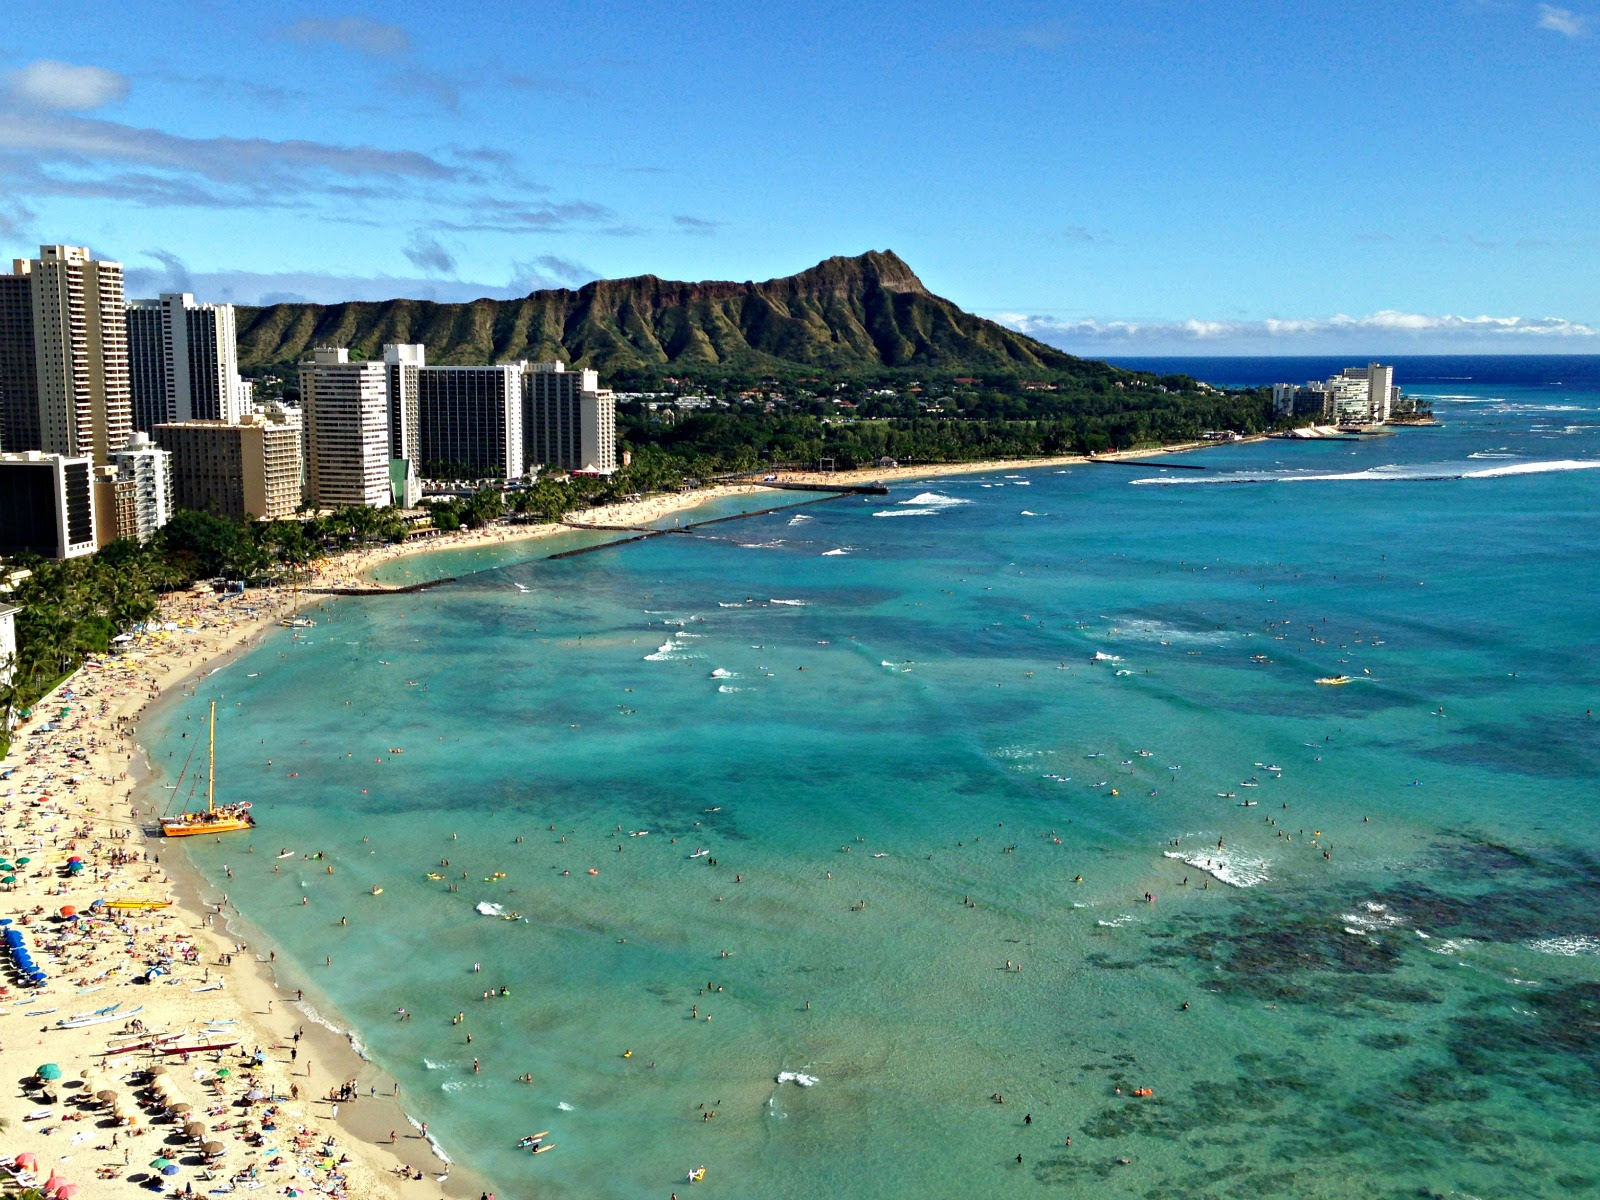 HAWAII ALL INCLUSIVE INCLUSIVE HAWAII VACATION PACKAGE